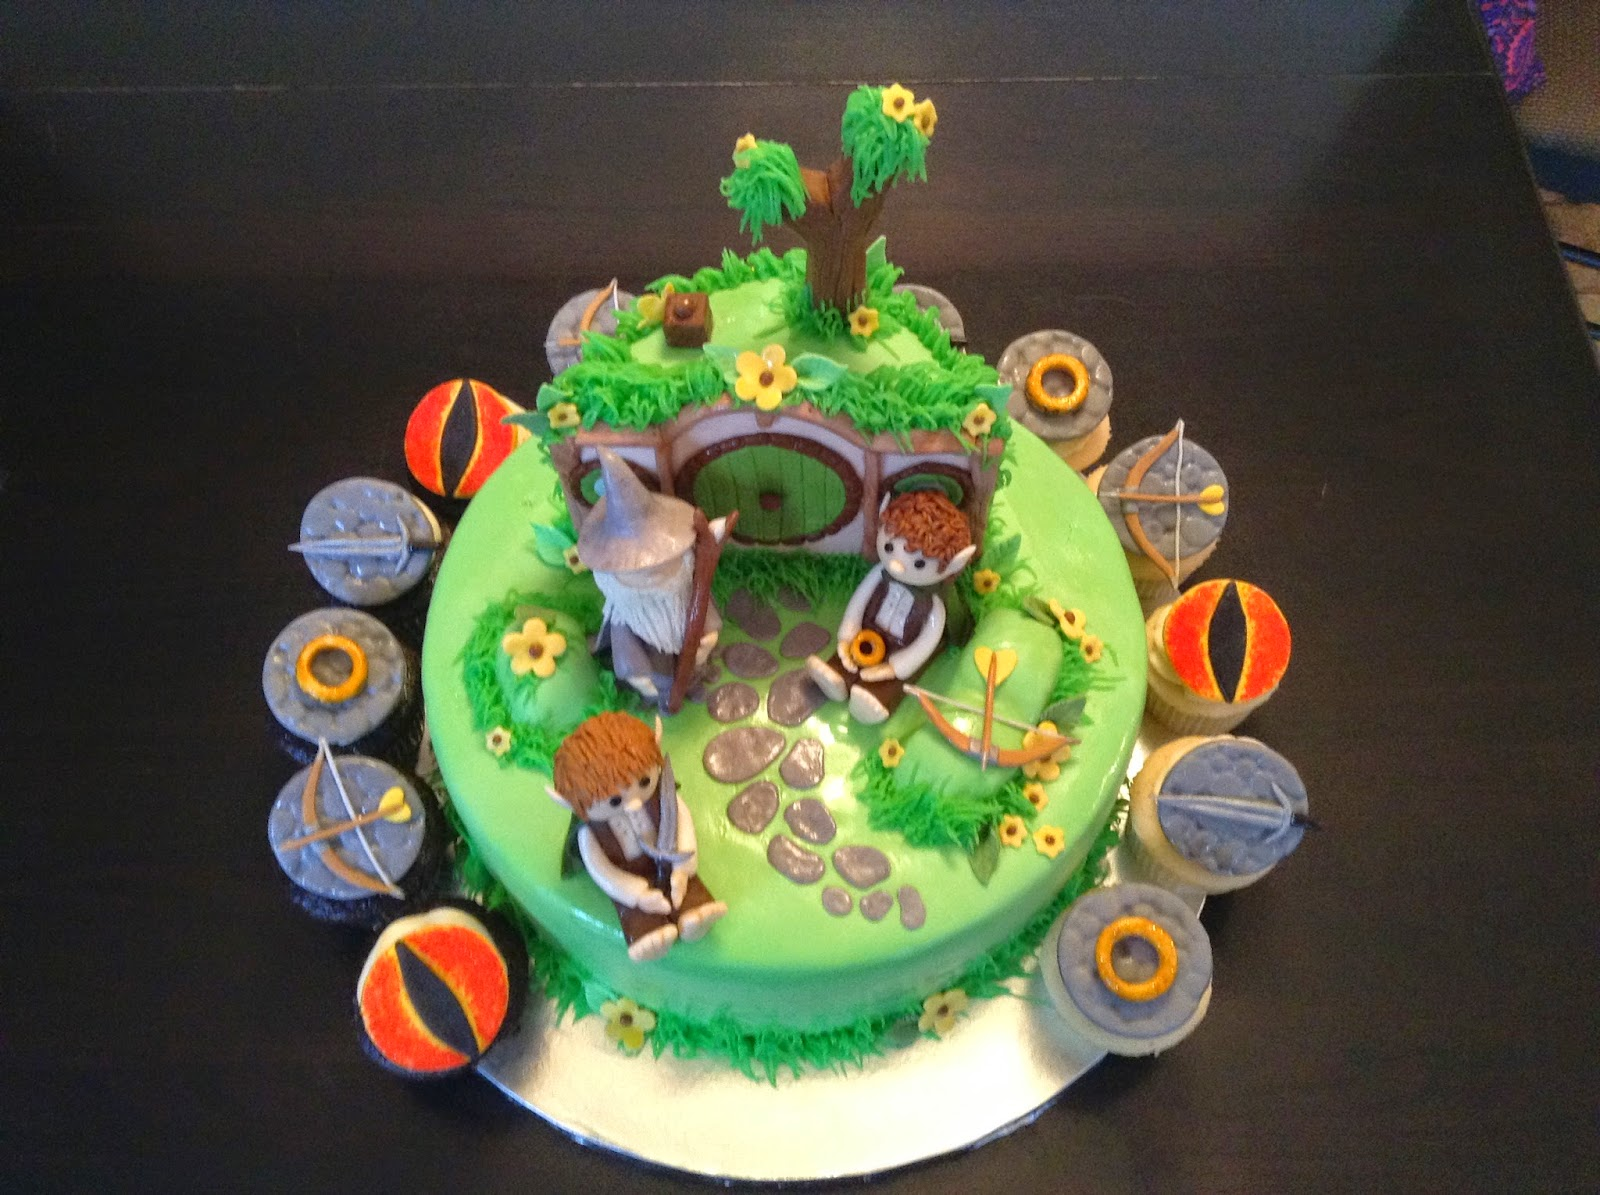 Classic Cakes Lord Of The Rings Cake And Cupcakes With Frodo